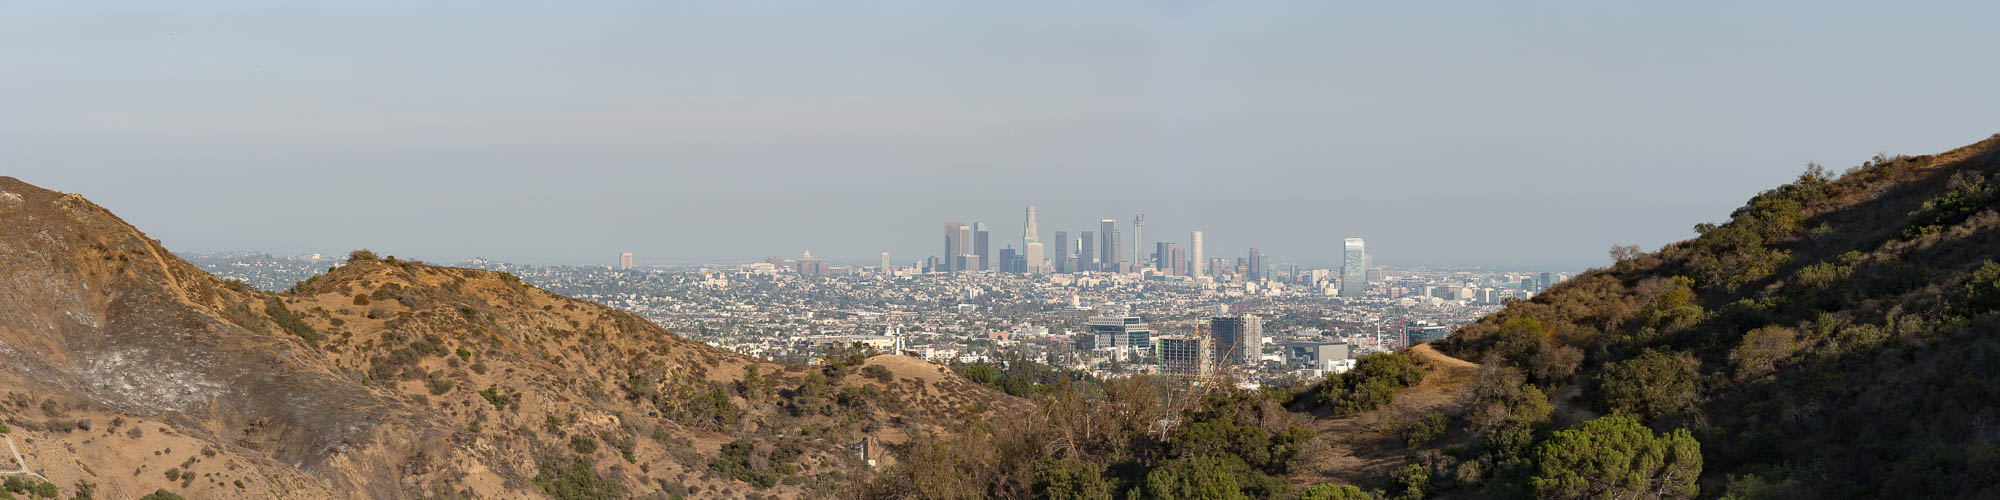 Panorama from the Hollywood Bowl Overlook, CA